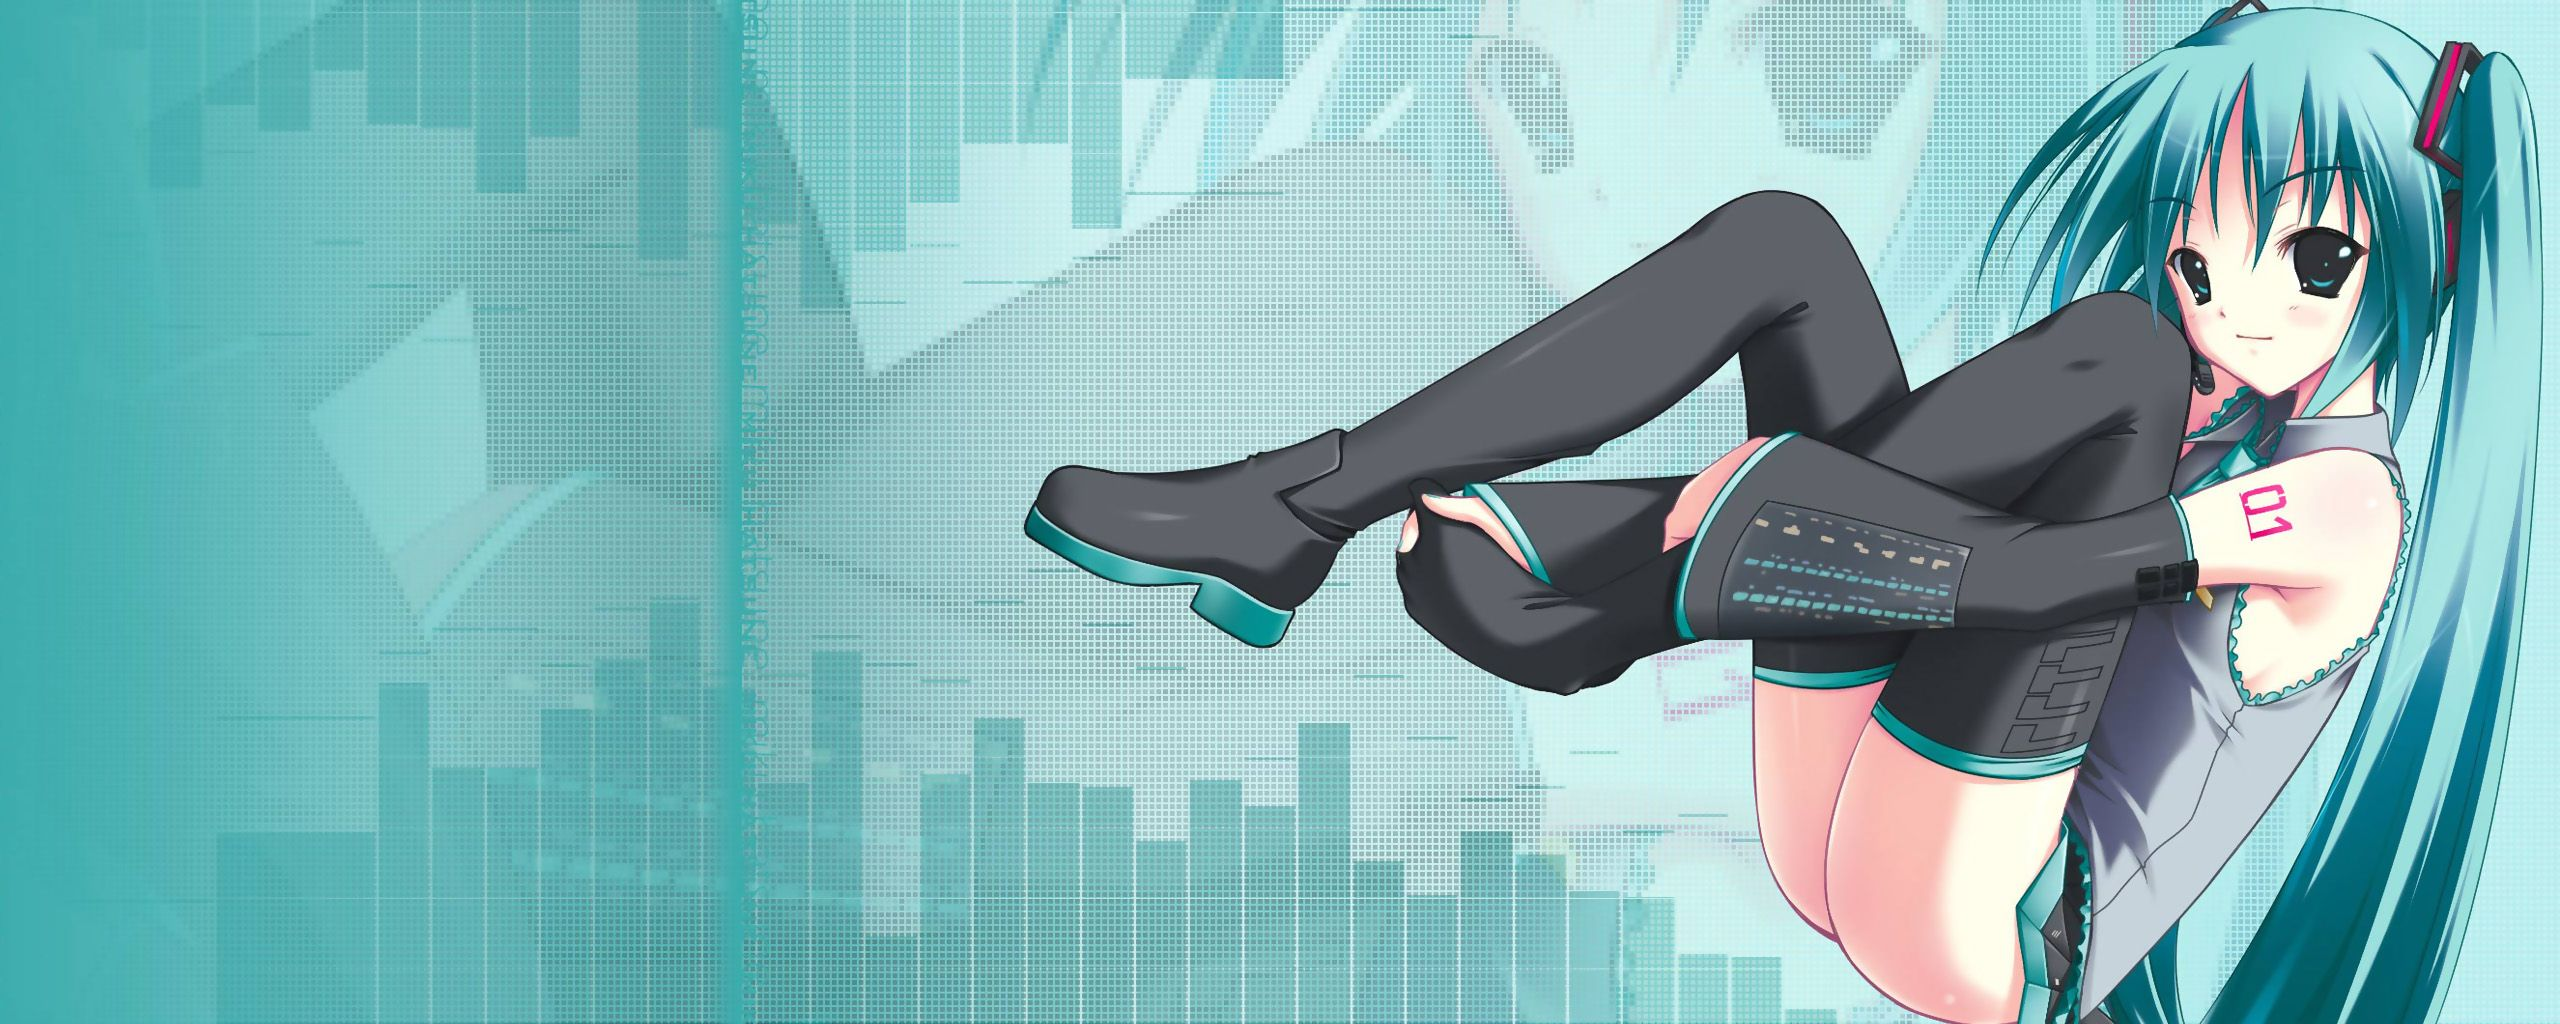 Hatsune Miku Wallpaper Free Download Dual Monitor Anime Hd